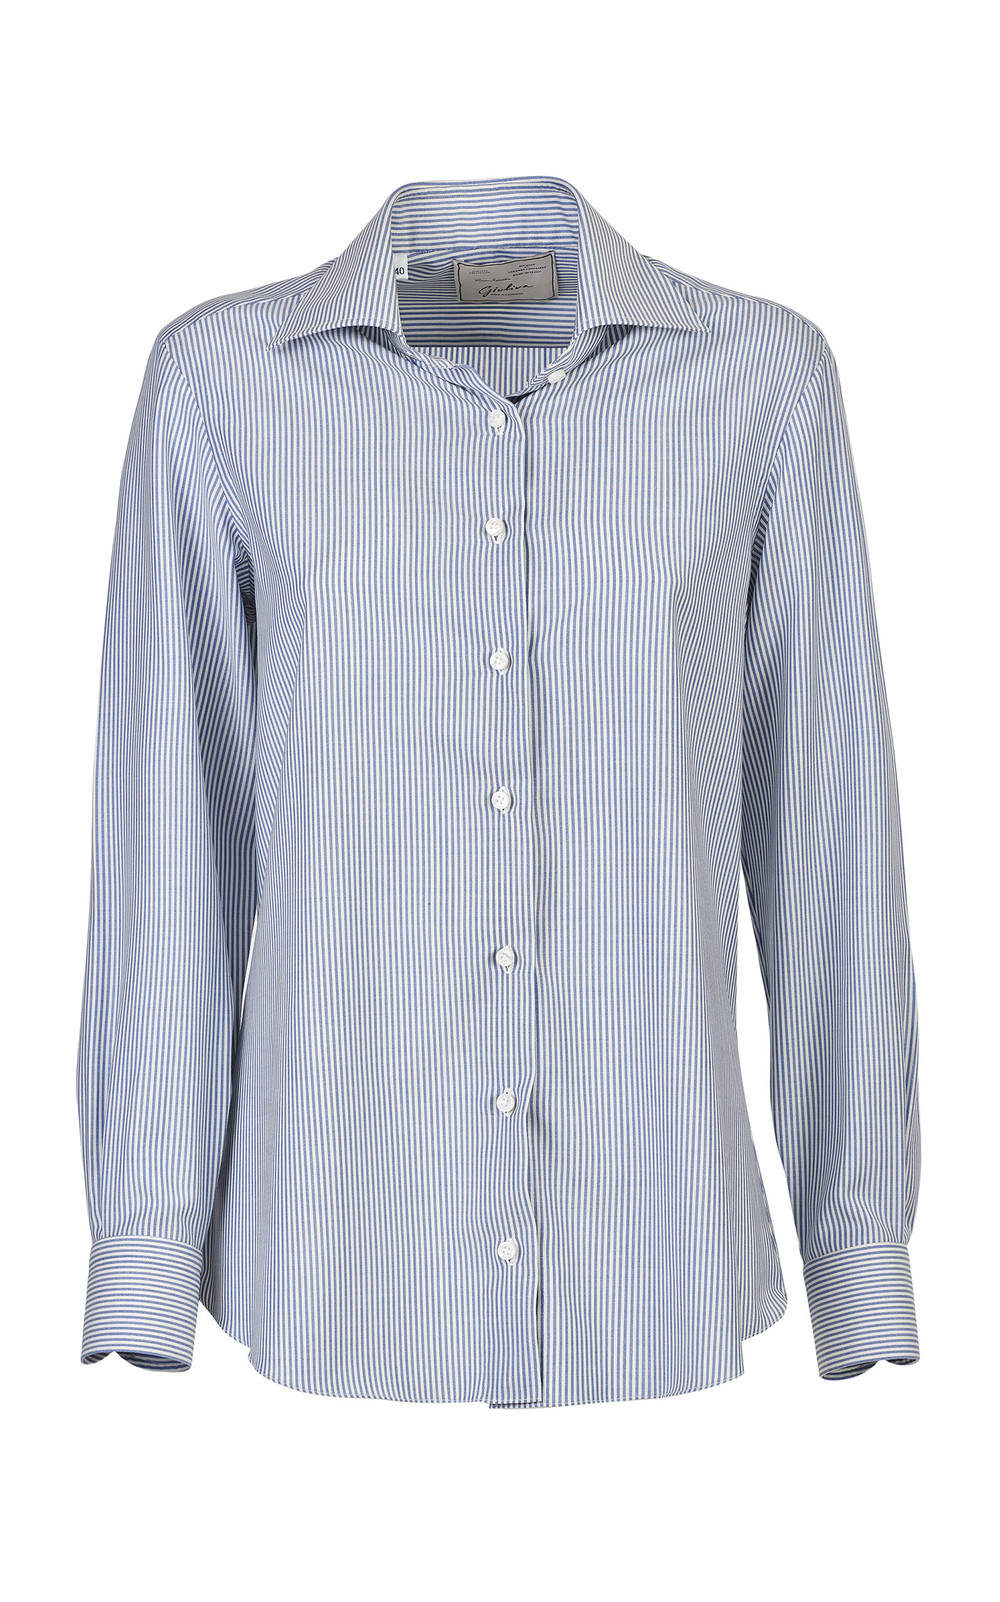 Giuliva Heritage Collection Pinstriped Wool Shirt in blue